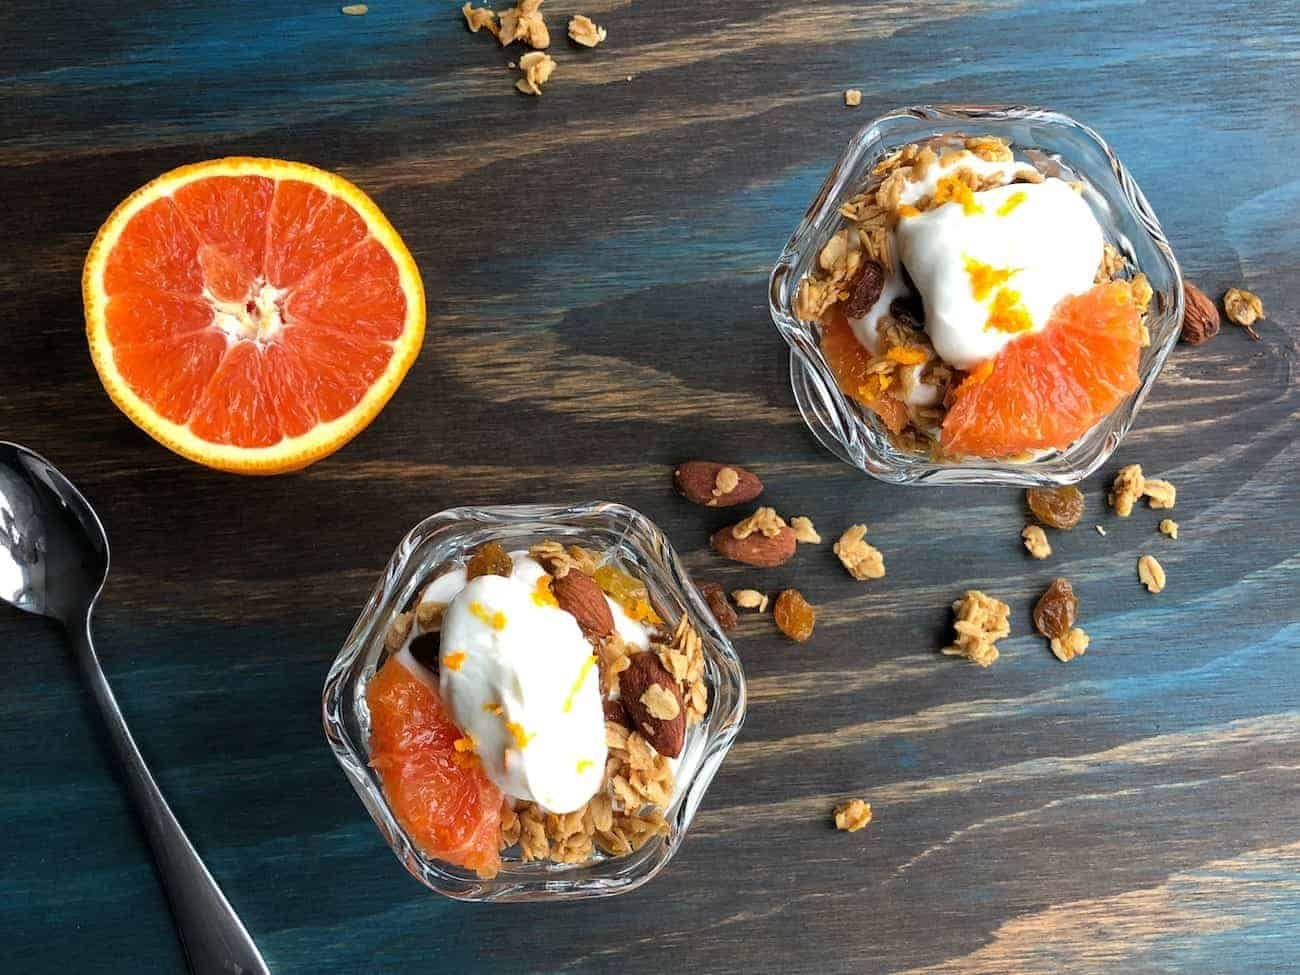 Two Orange and Yogurt Parfaits on a table with half an orange and a spoon